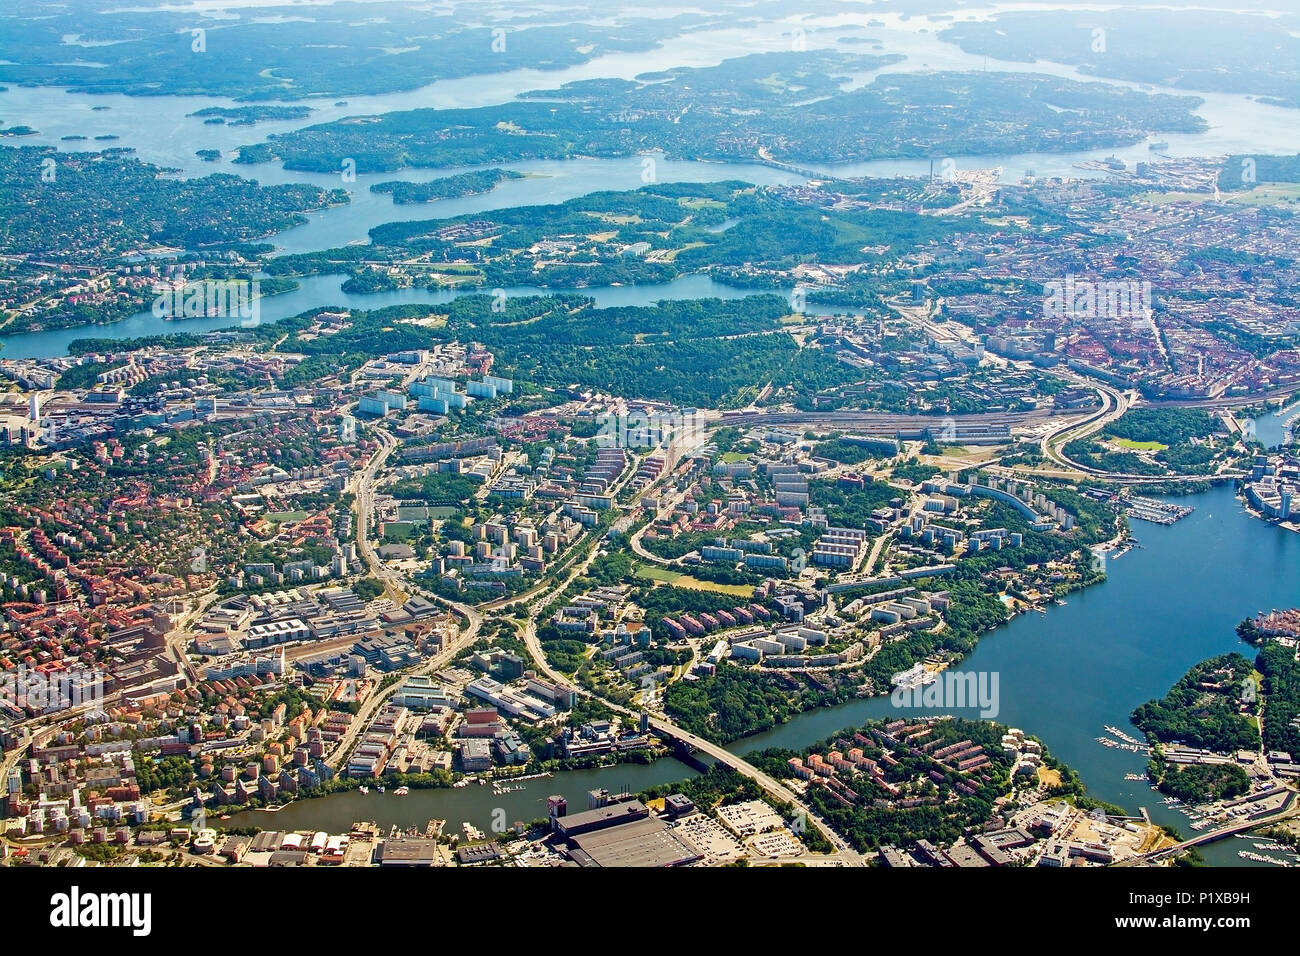 STOCKHOLM, SWEDEN - JUNE 1, 2018: Aerial shot over Solna Lidingo Sweden during inflight to Arlanda airport on a sunny day on June 1, 20108 in Stockhol Stock Photo